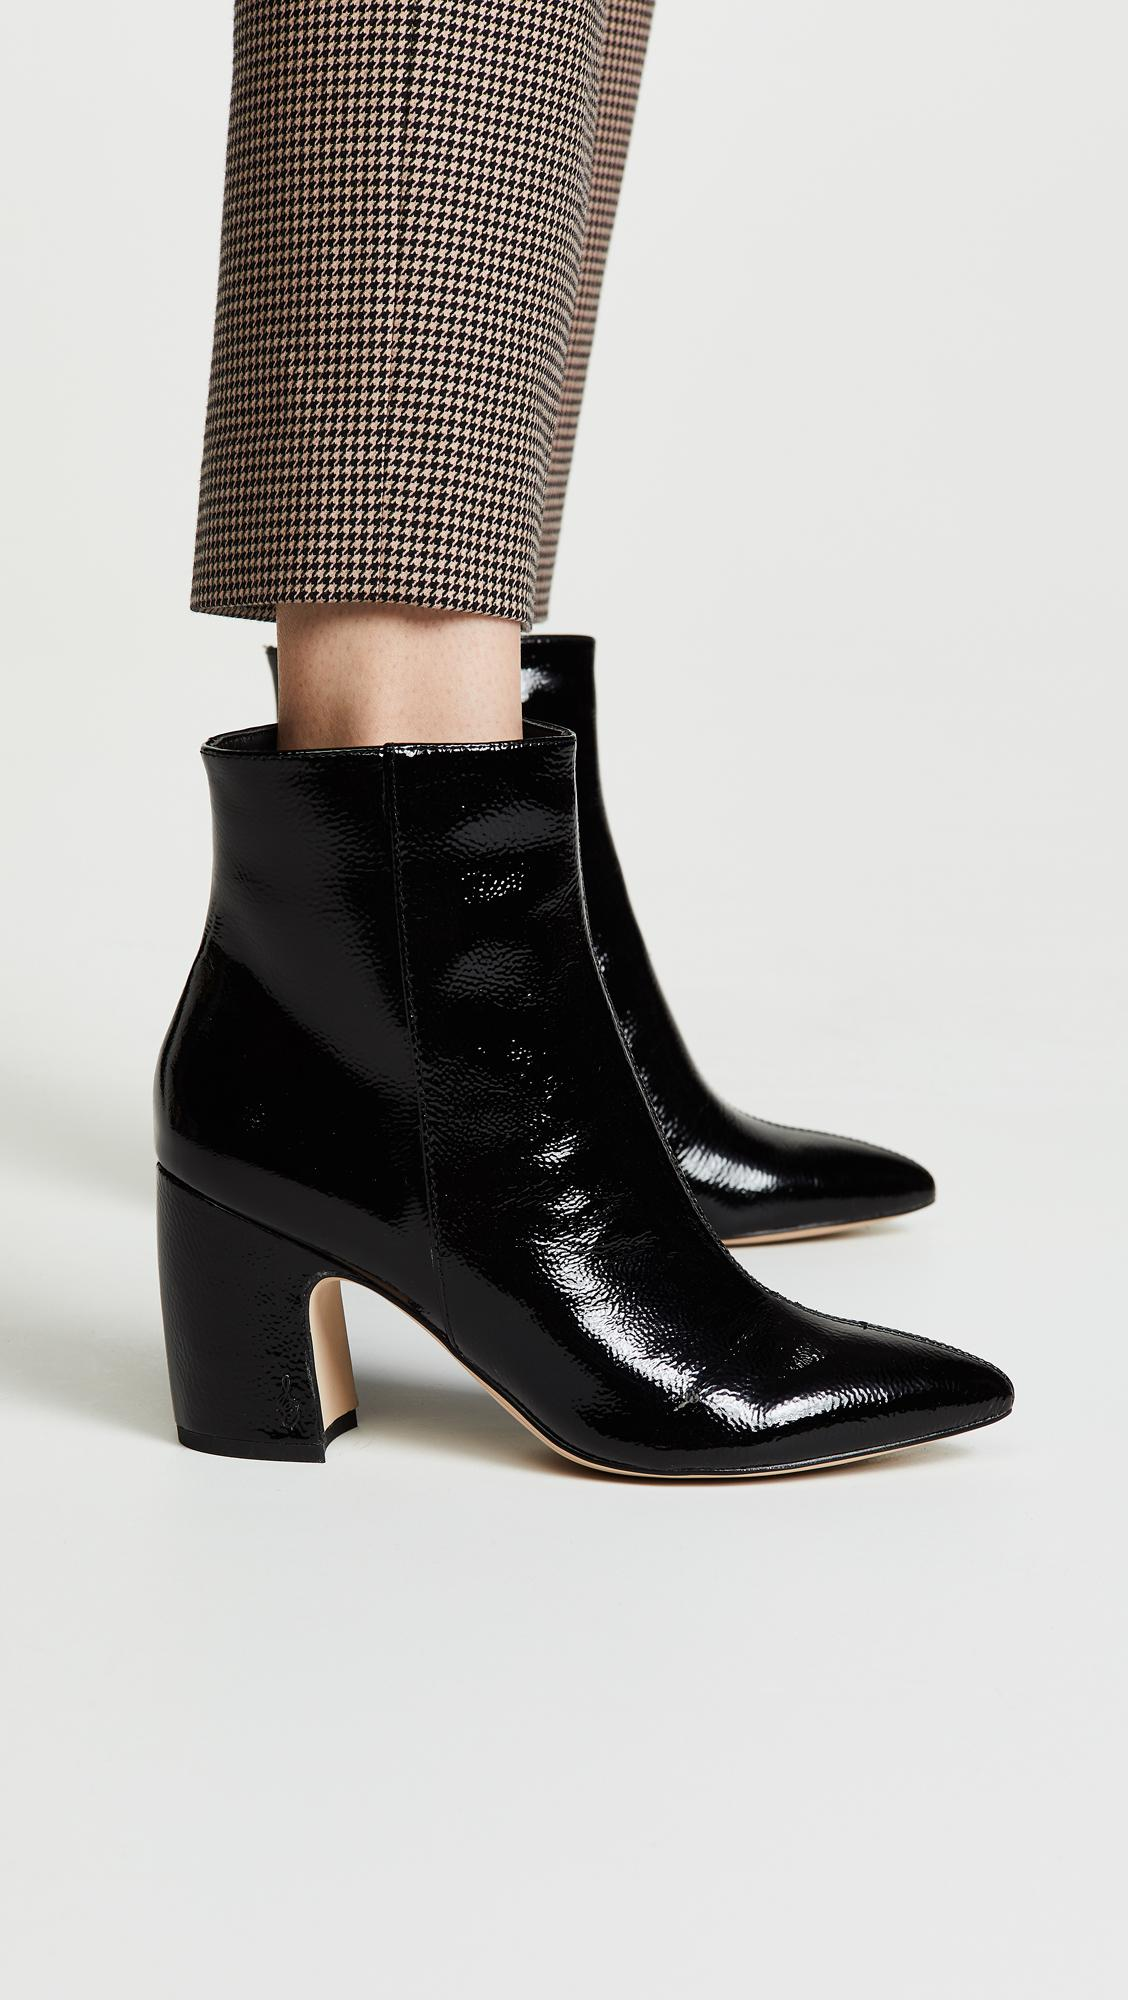 Sam Edelman Leather Hilty Booties in